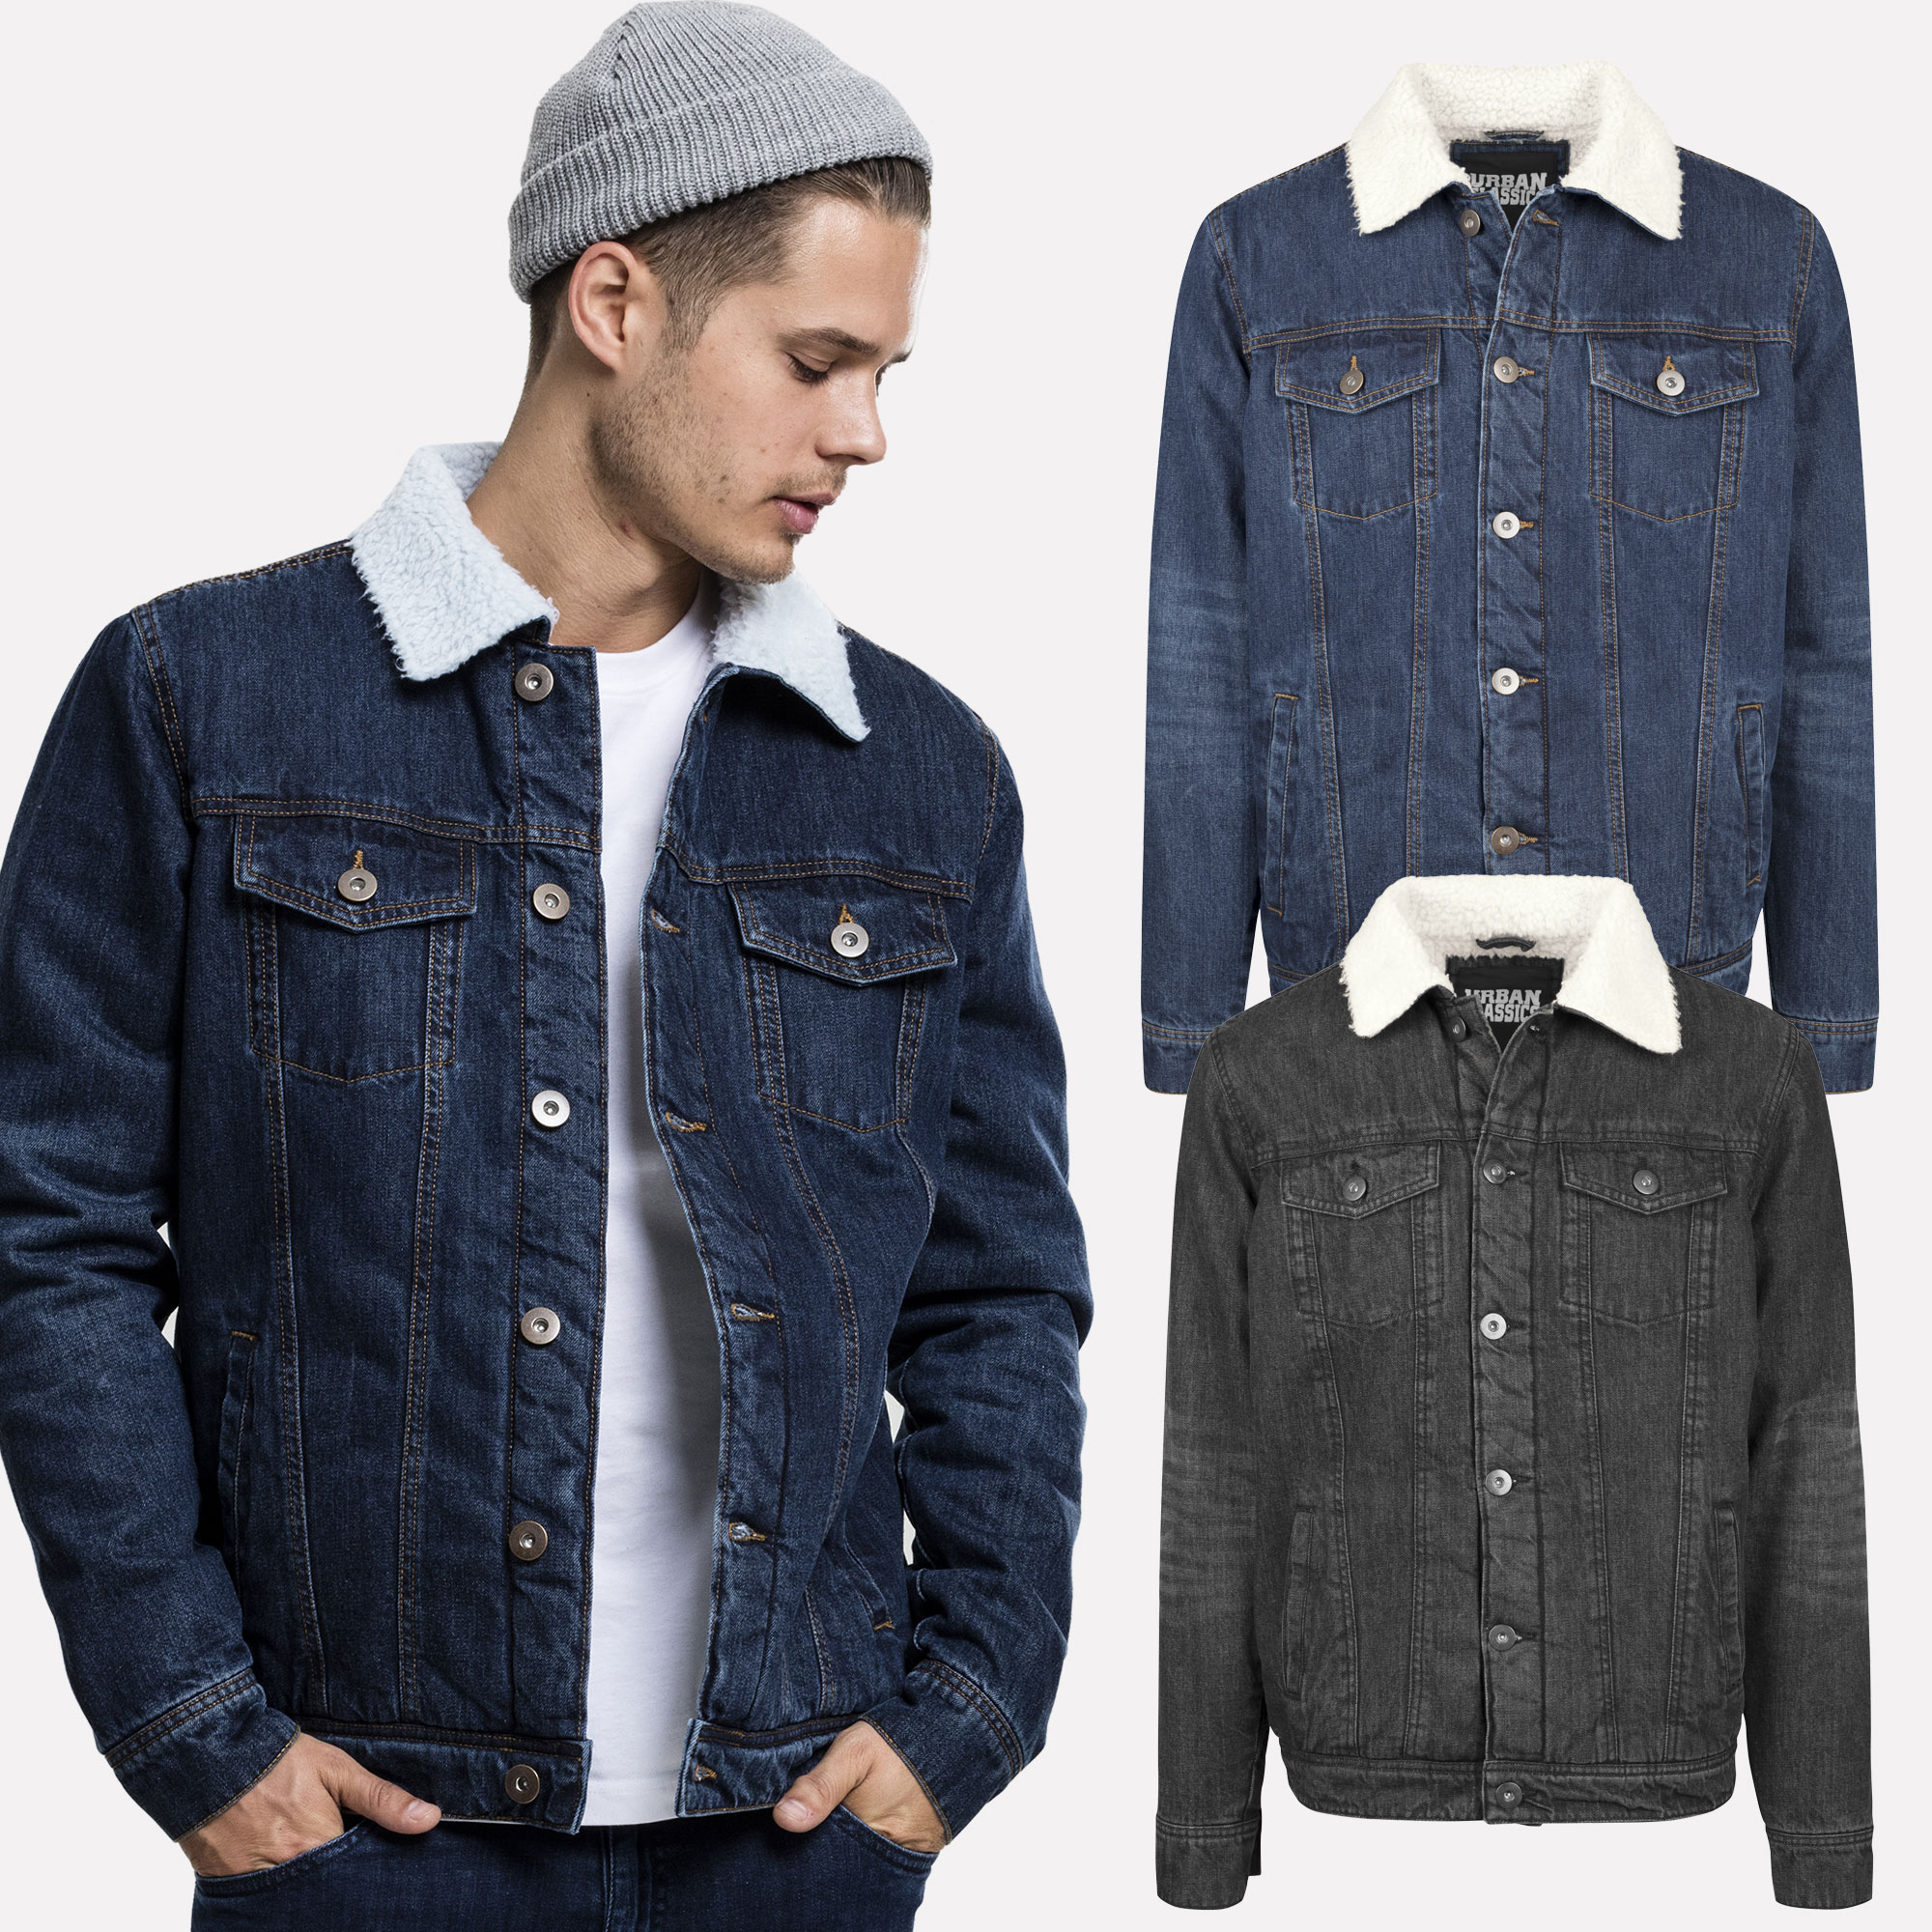 3805f84e74c Details about Urban Classics Men s Denim Jeans Jacket Denim Jacket Collar  Padded Fur S - XXL